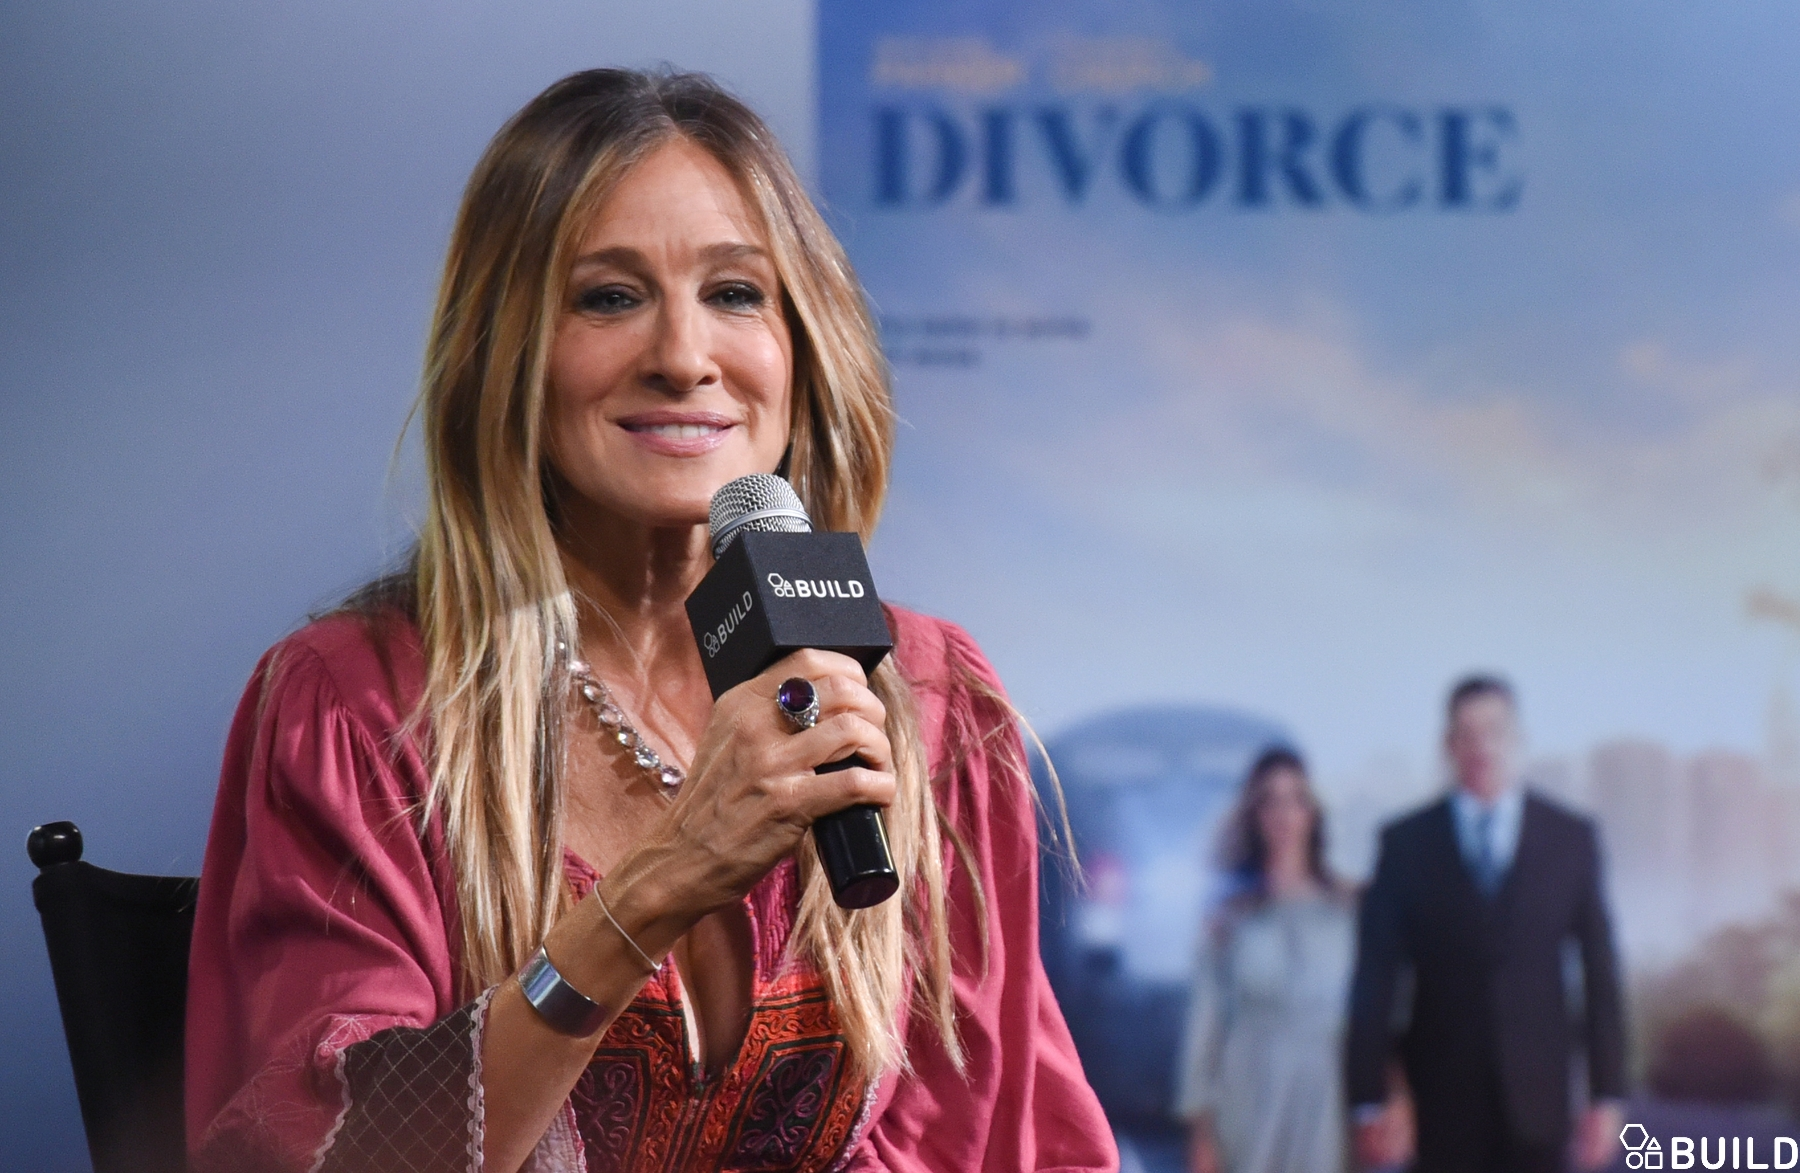 Sarah Jessica Parker visits AOL Hq for Build on October 6, 2016 in New York. Photos by Noam Galai